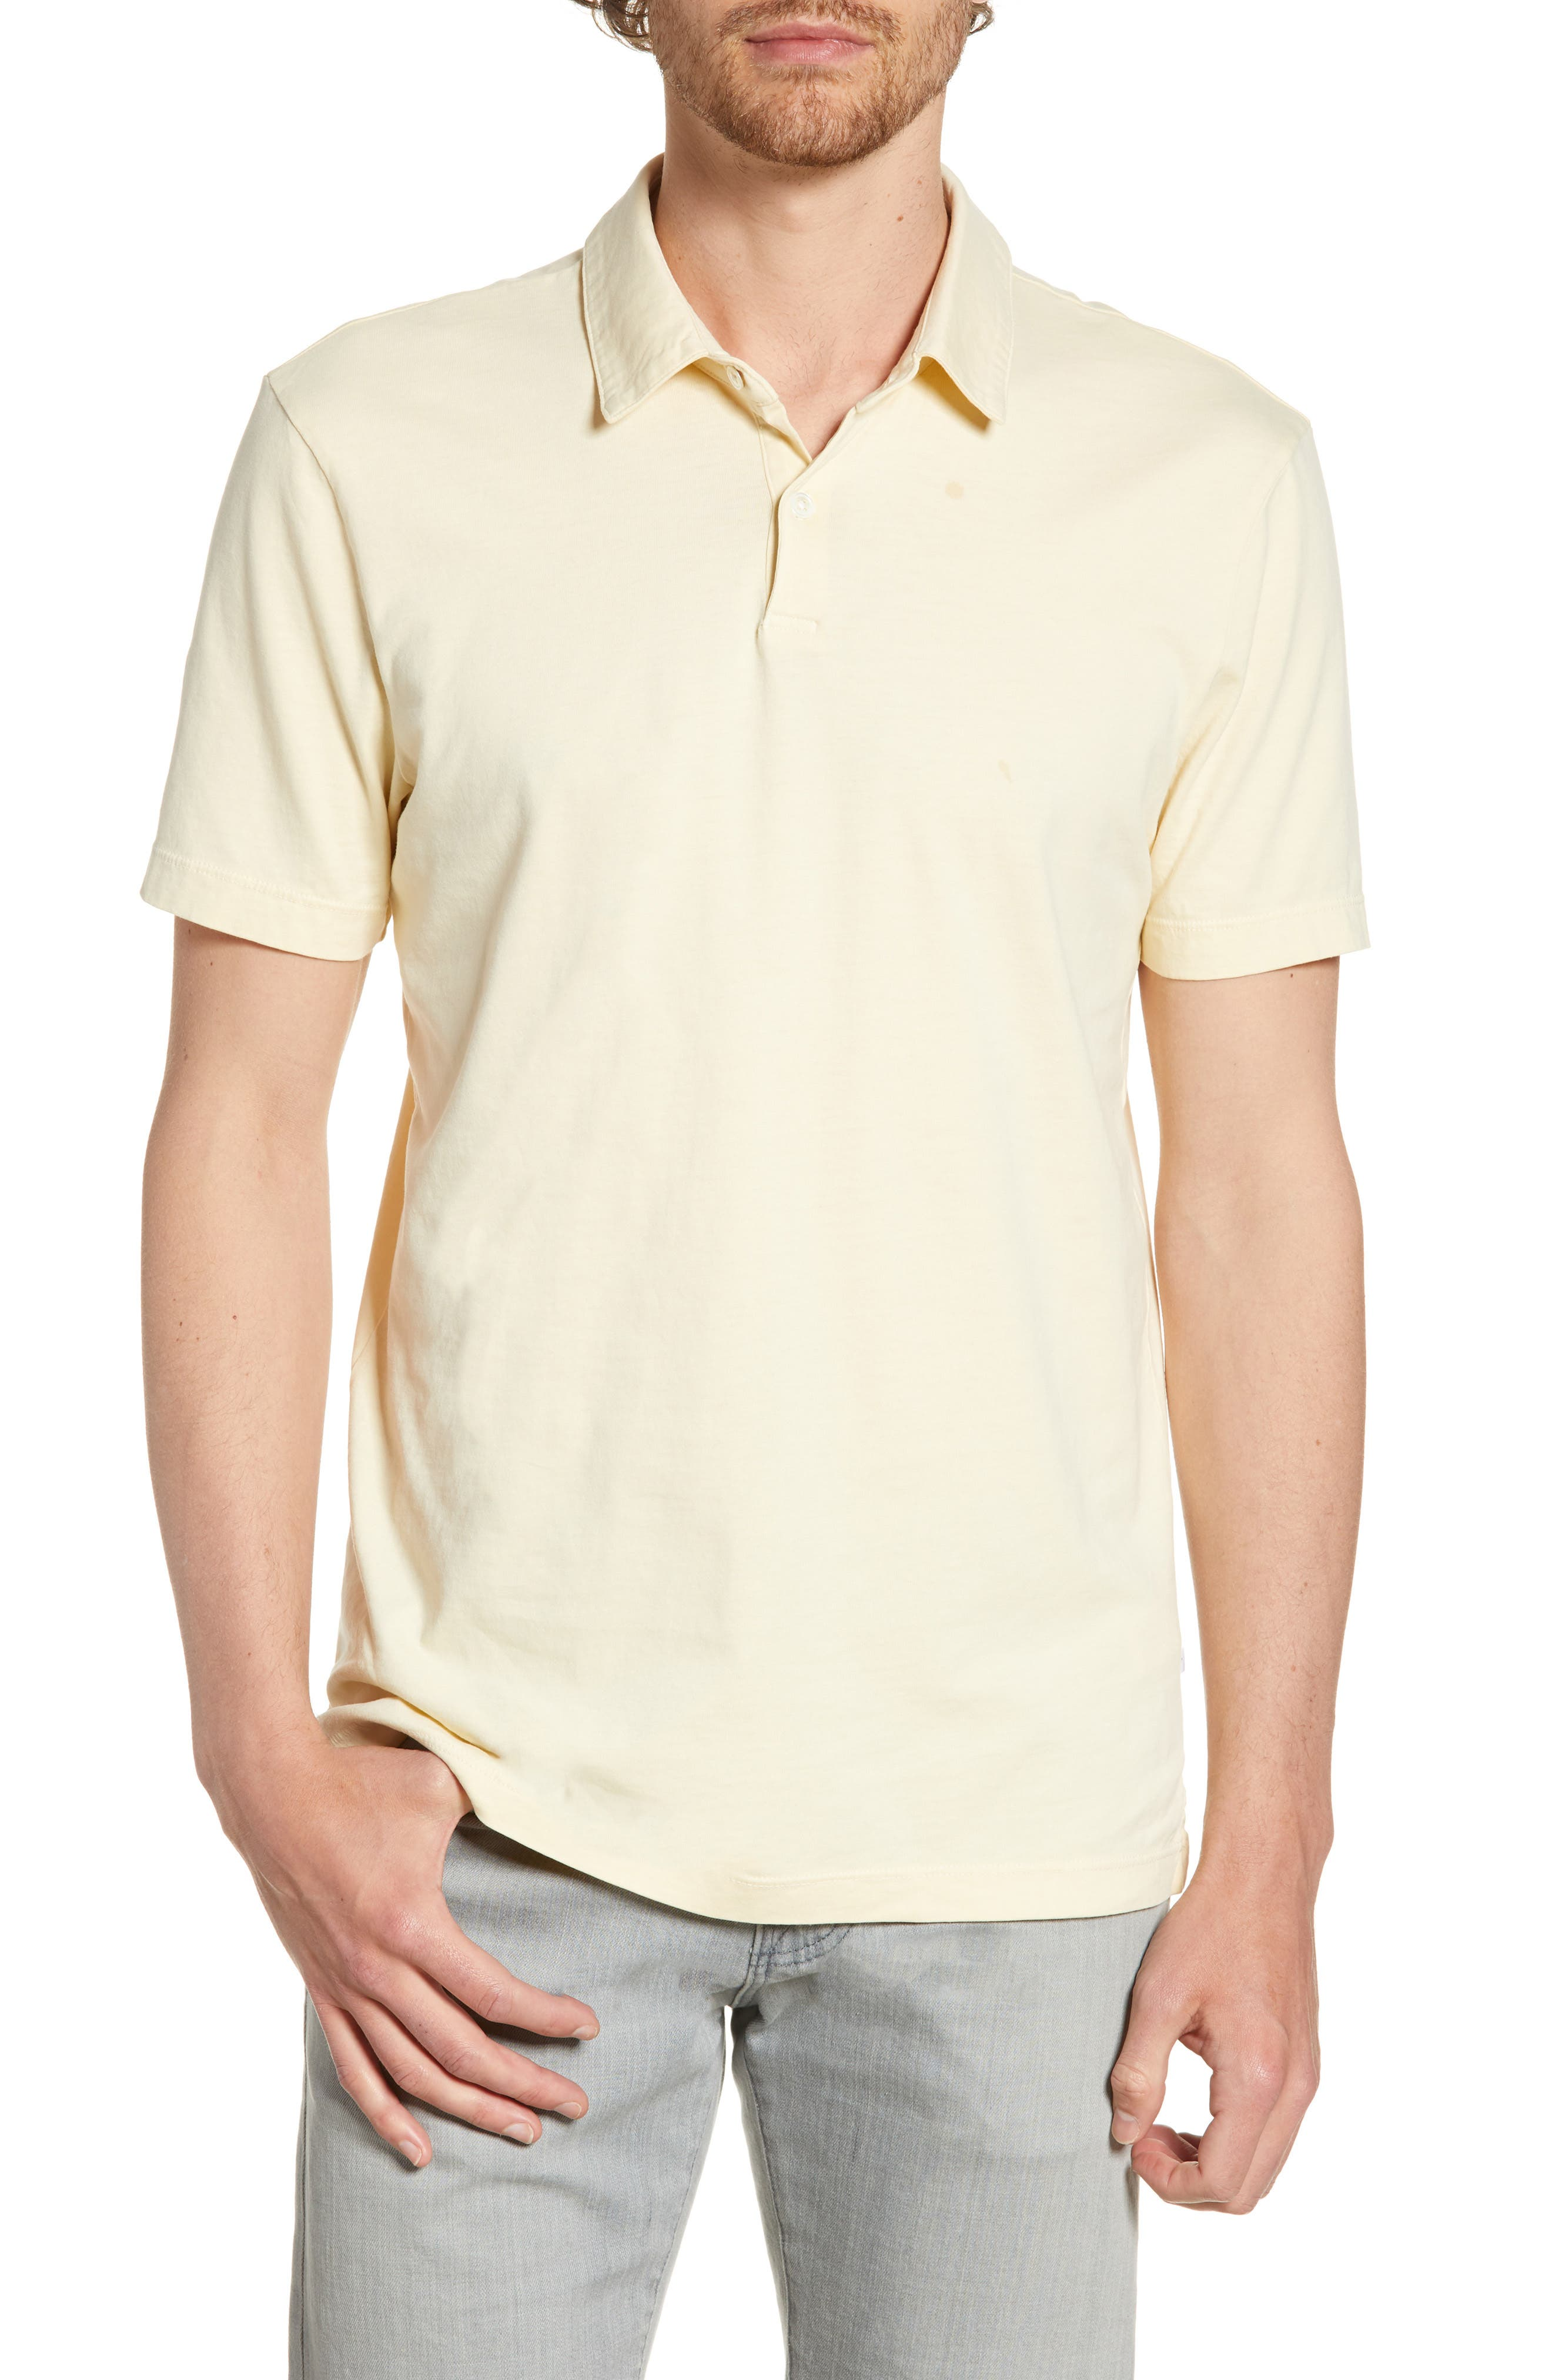 JAMES PERSE, Slim Fit Sueded Jersey Polo, Main thumbnail 1, color, GESSO